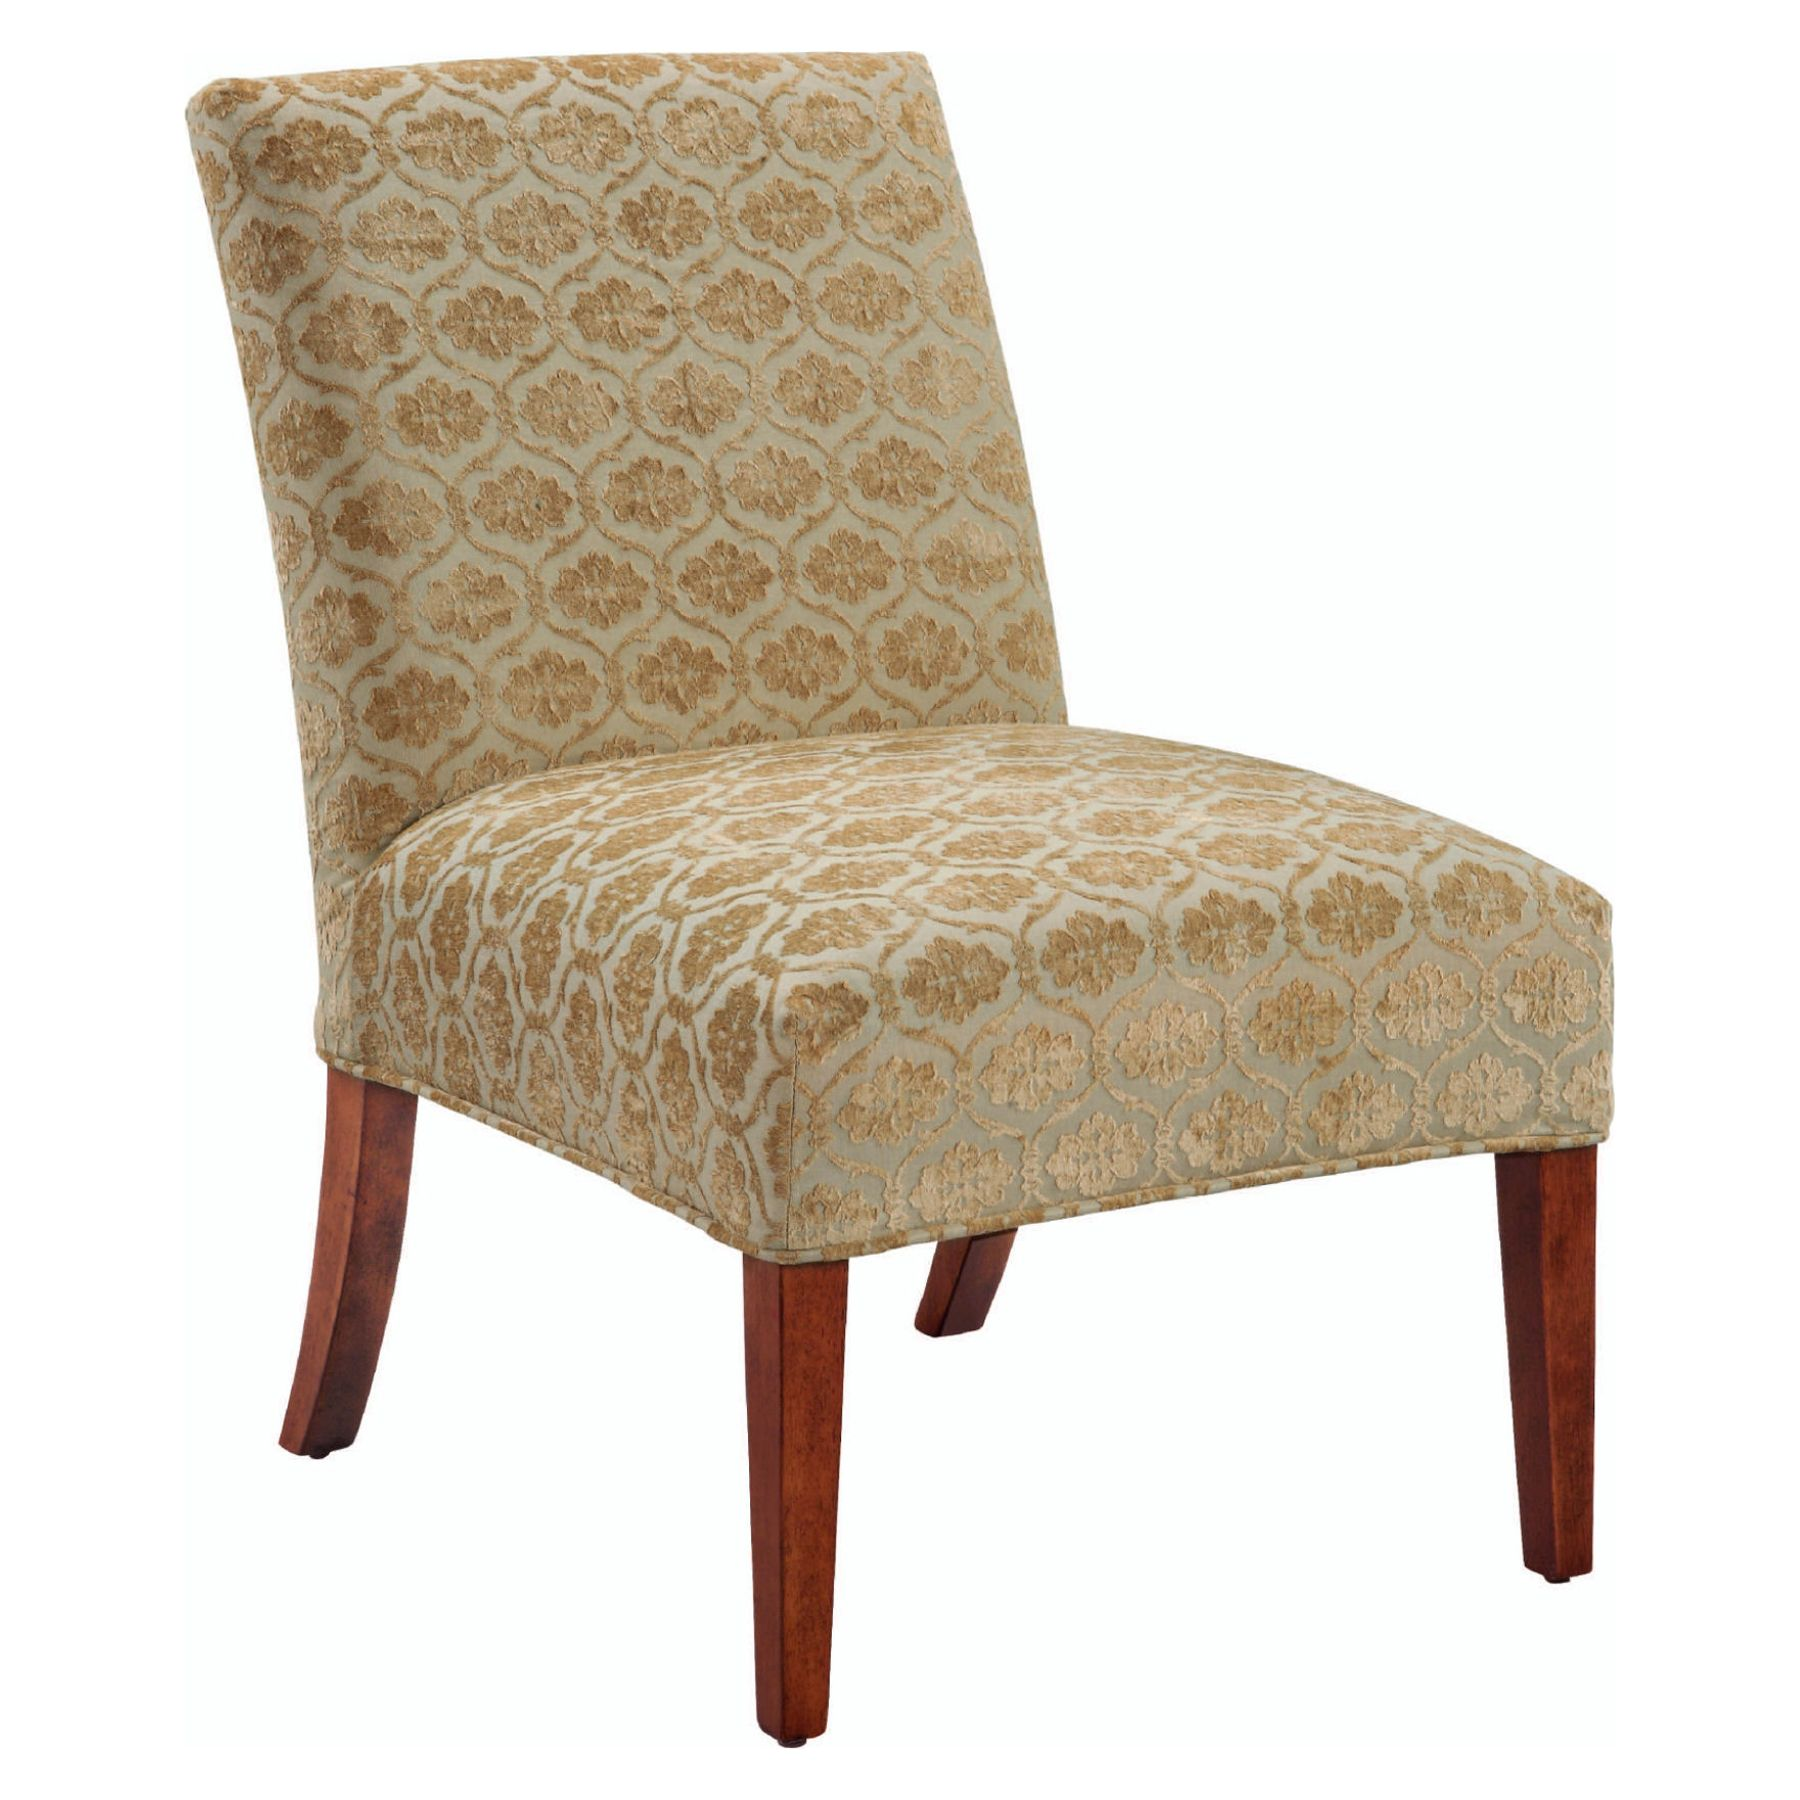 slipcover for armless slipper chair swing history 6091482 damask sears outlet